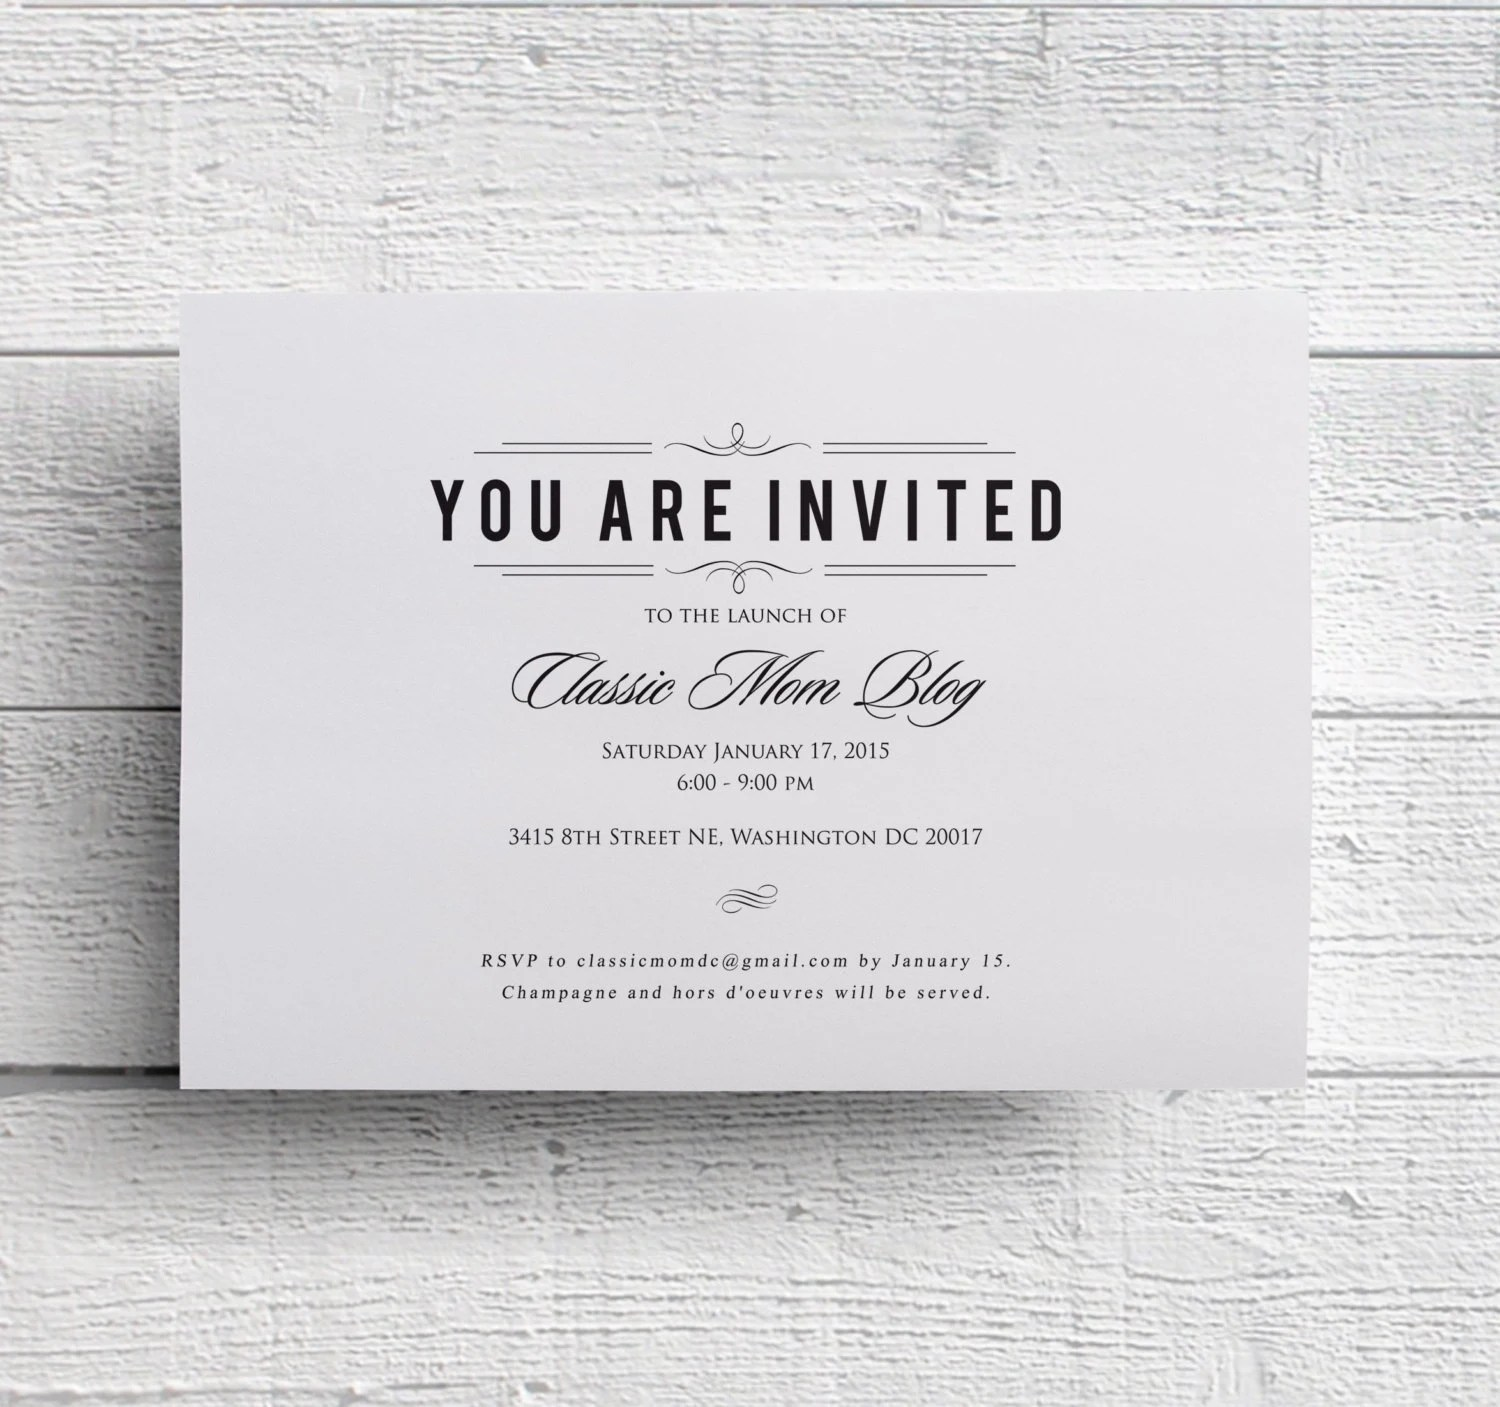 Corporate Event Invitation Template – Event Invitation Template